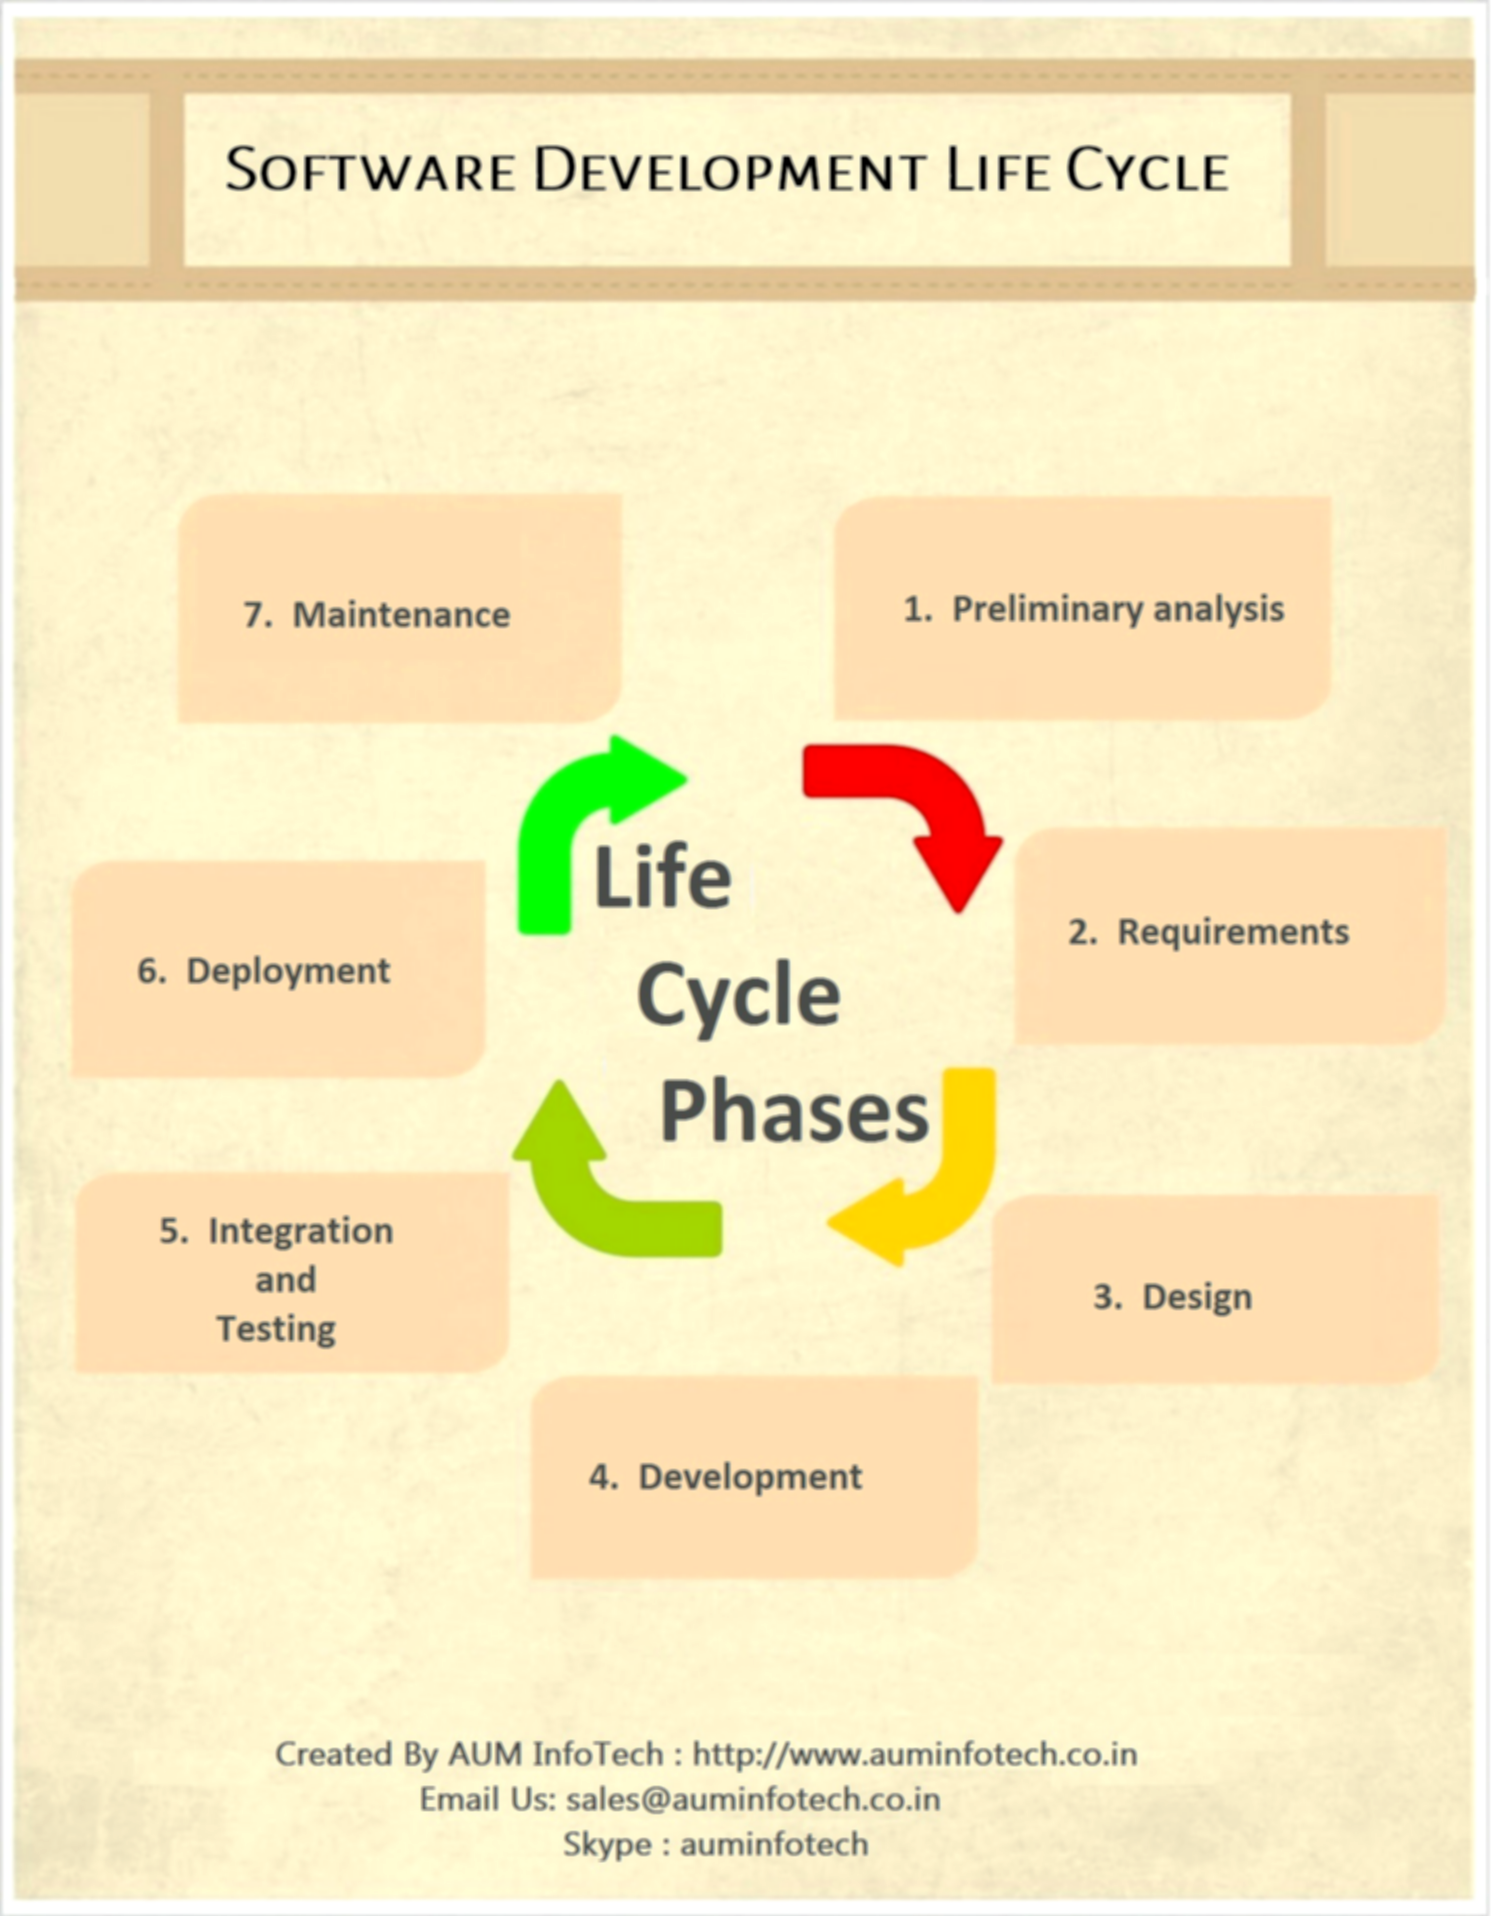 Software Development Process (Life cycle) Infographic